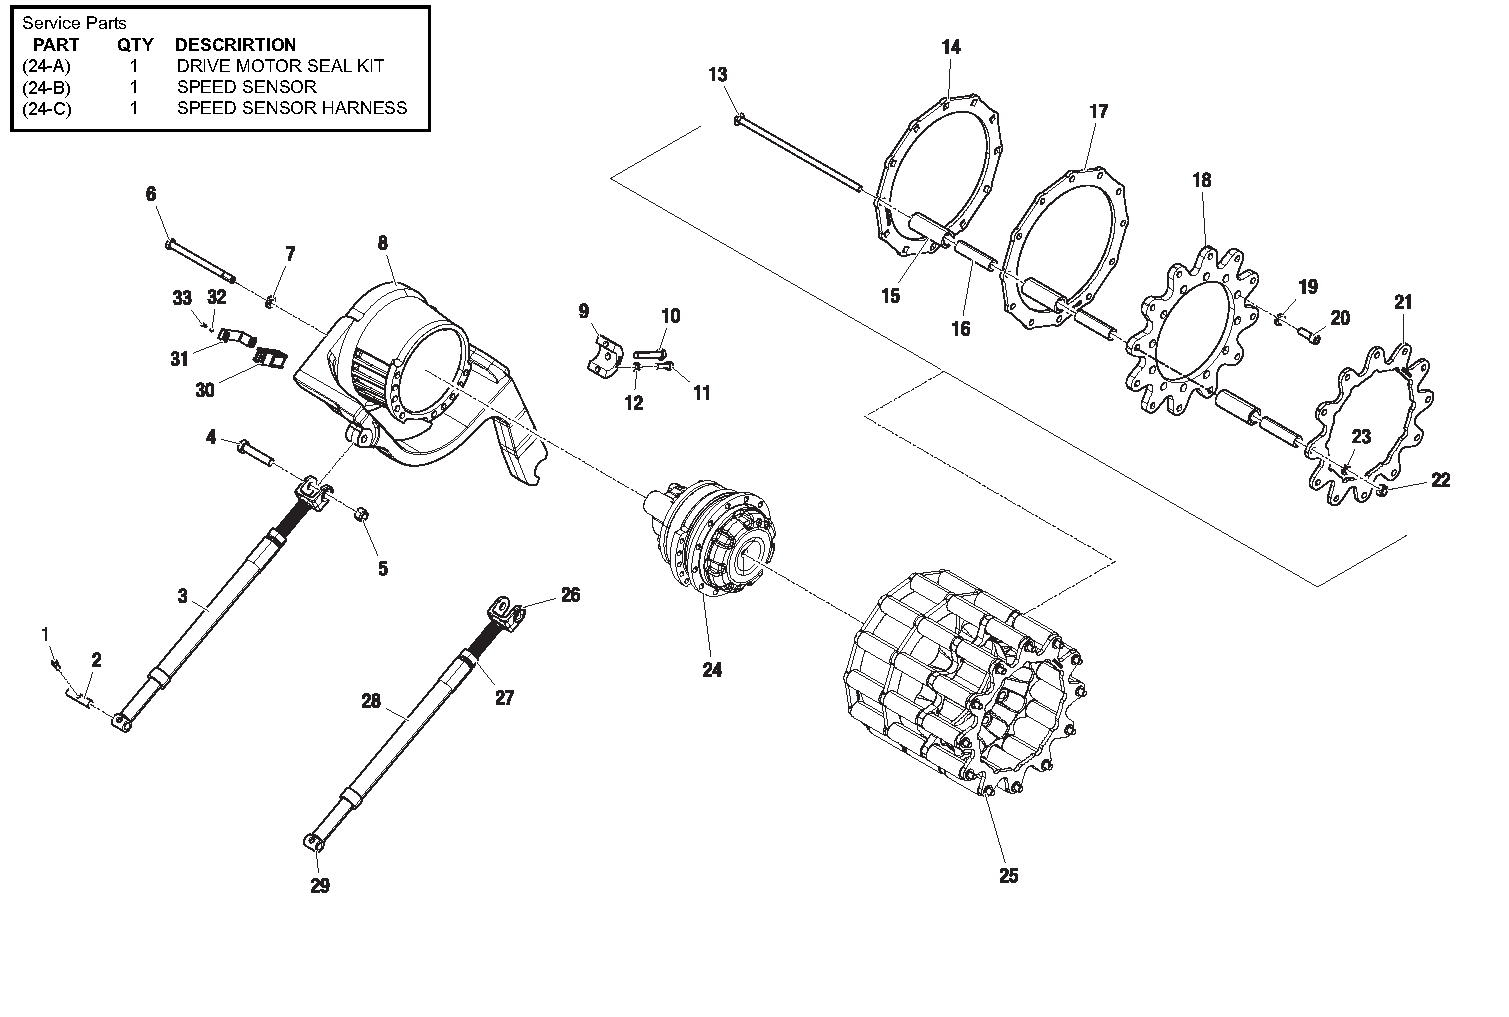 Diagram 5-5B Drive Table Assembly - Left Side